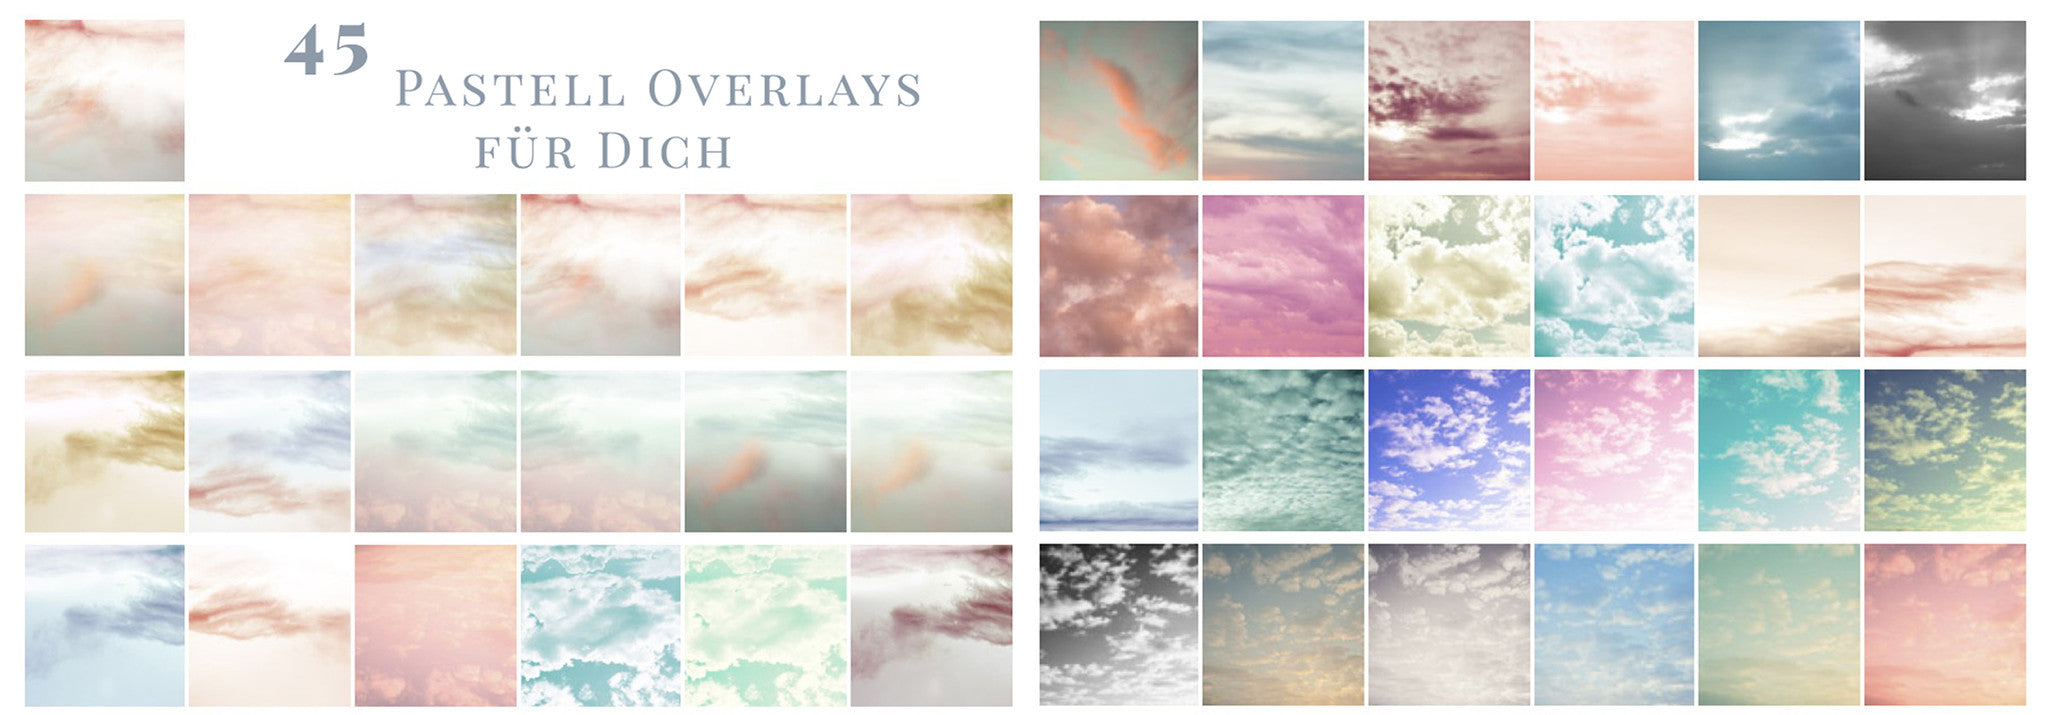 Photo Overlays Sky Pastells Set